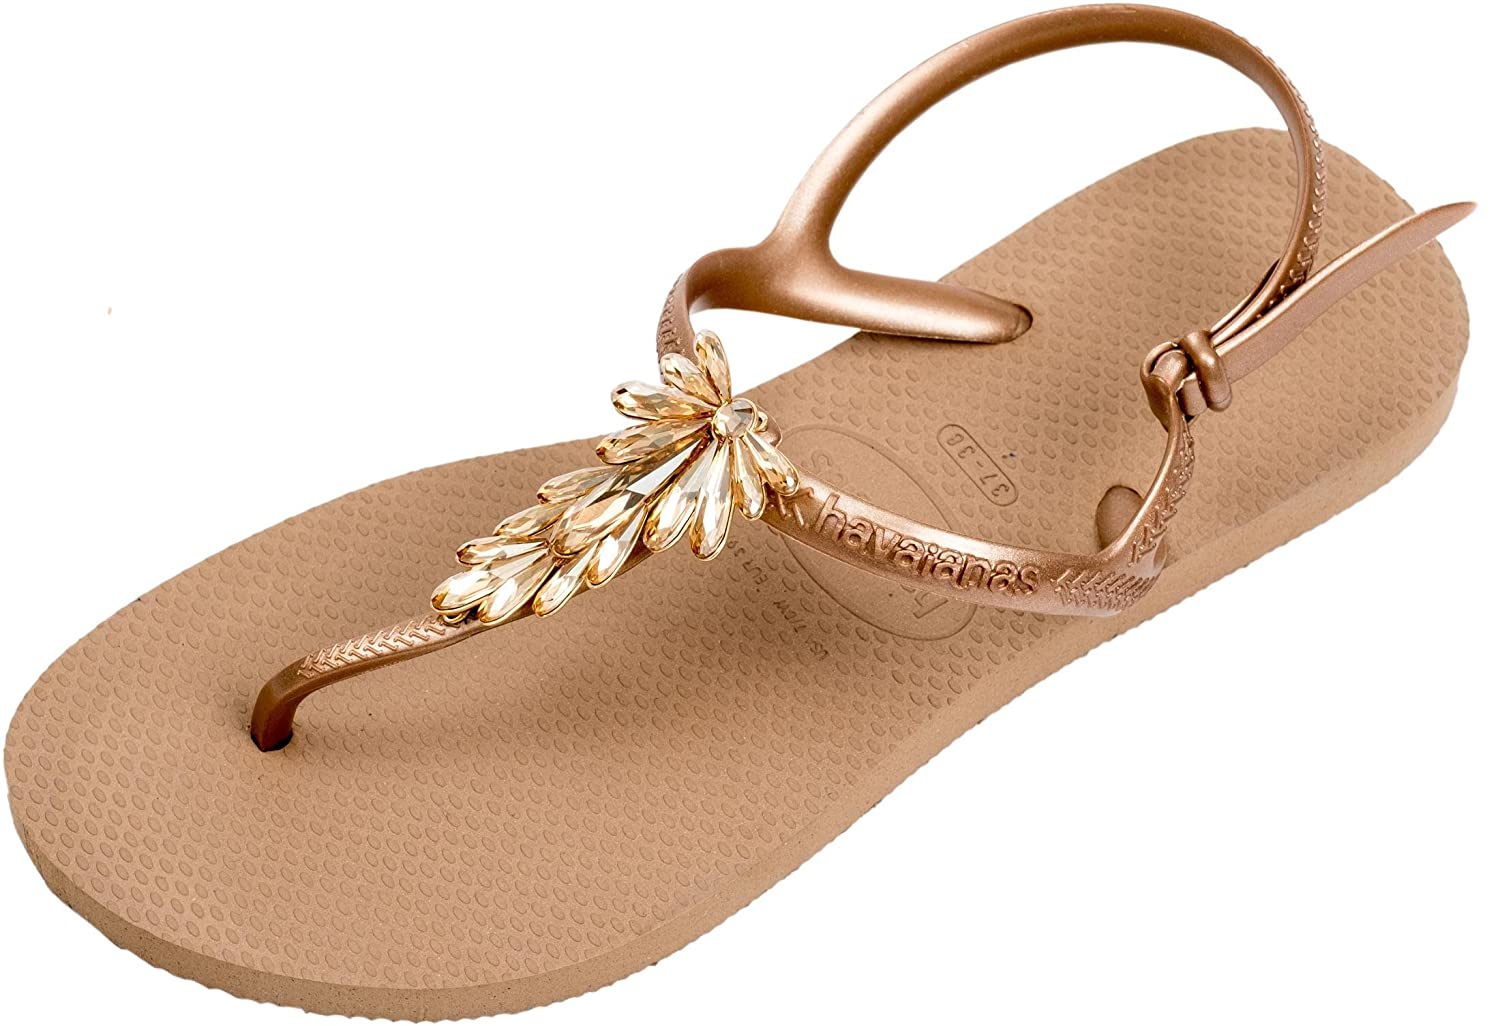 b22b64f68 Havaianas Women s Freedom Capri Sandals Swarovski Crystals  Amazon.co.uk   Shoes   Bags